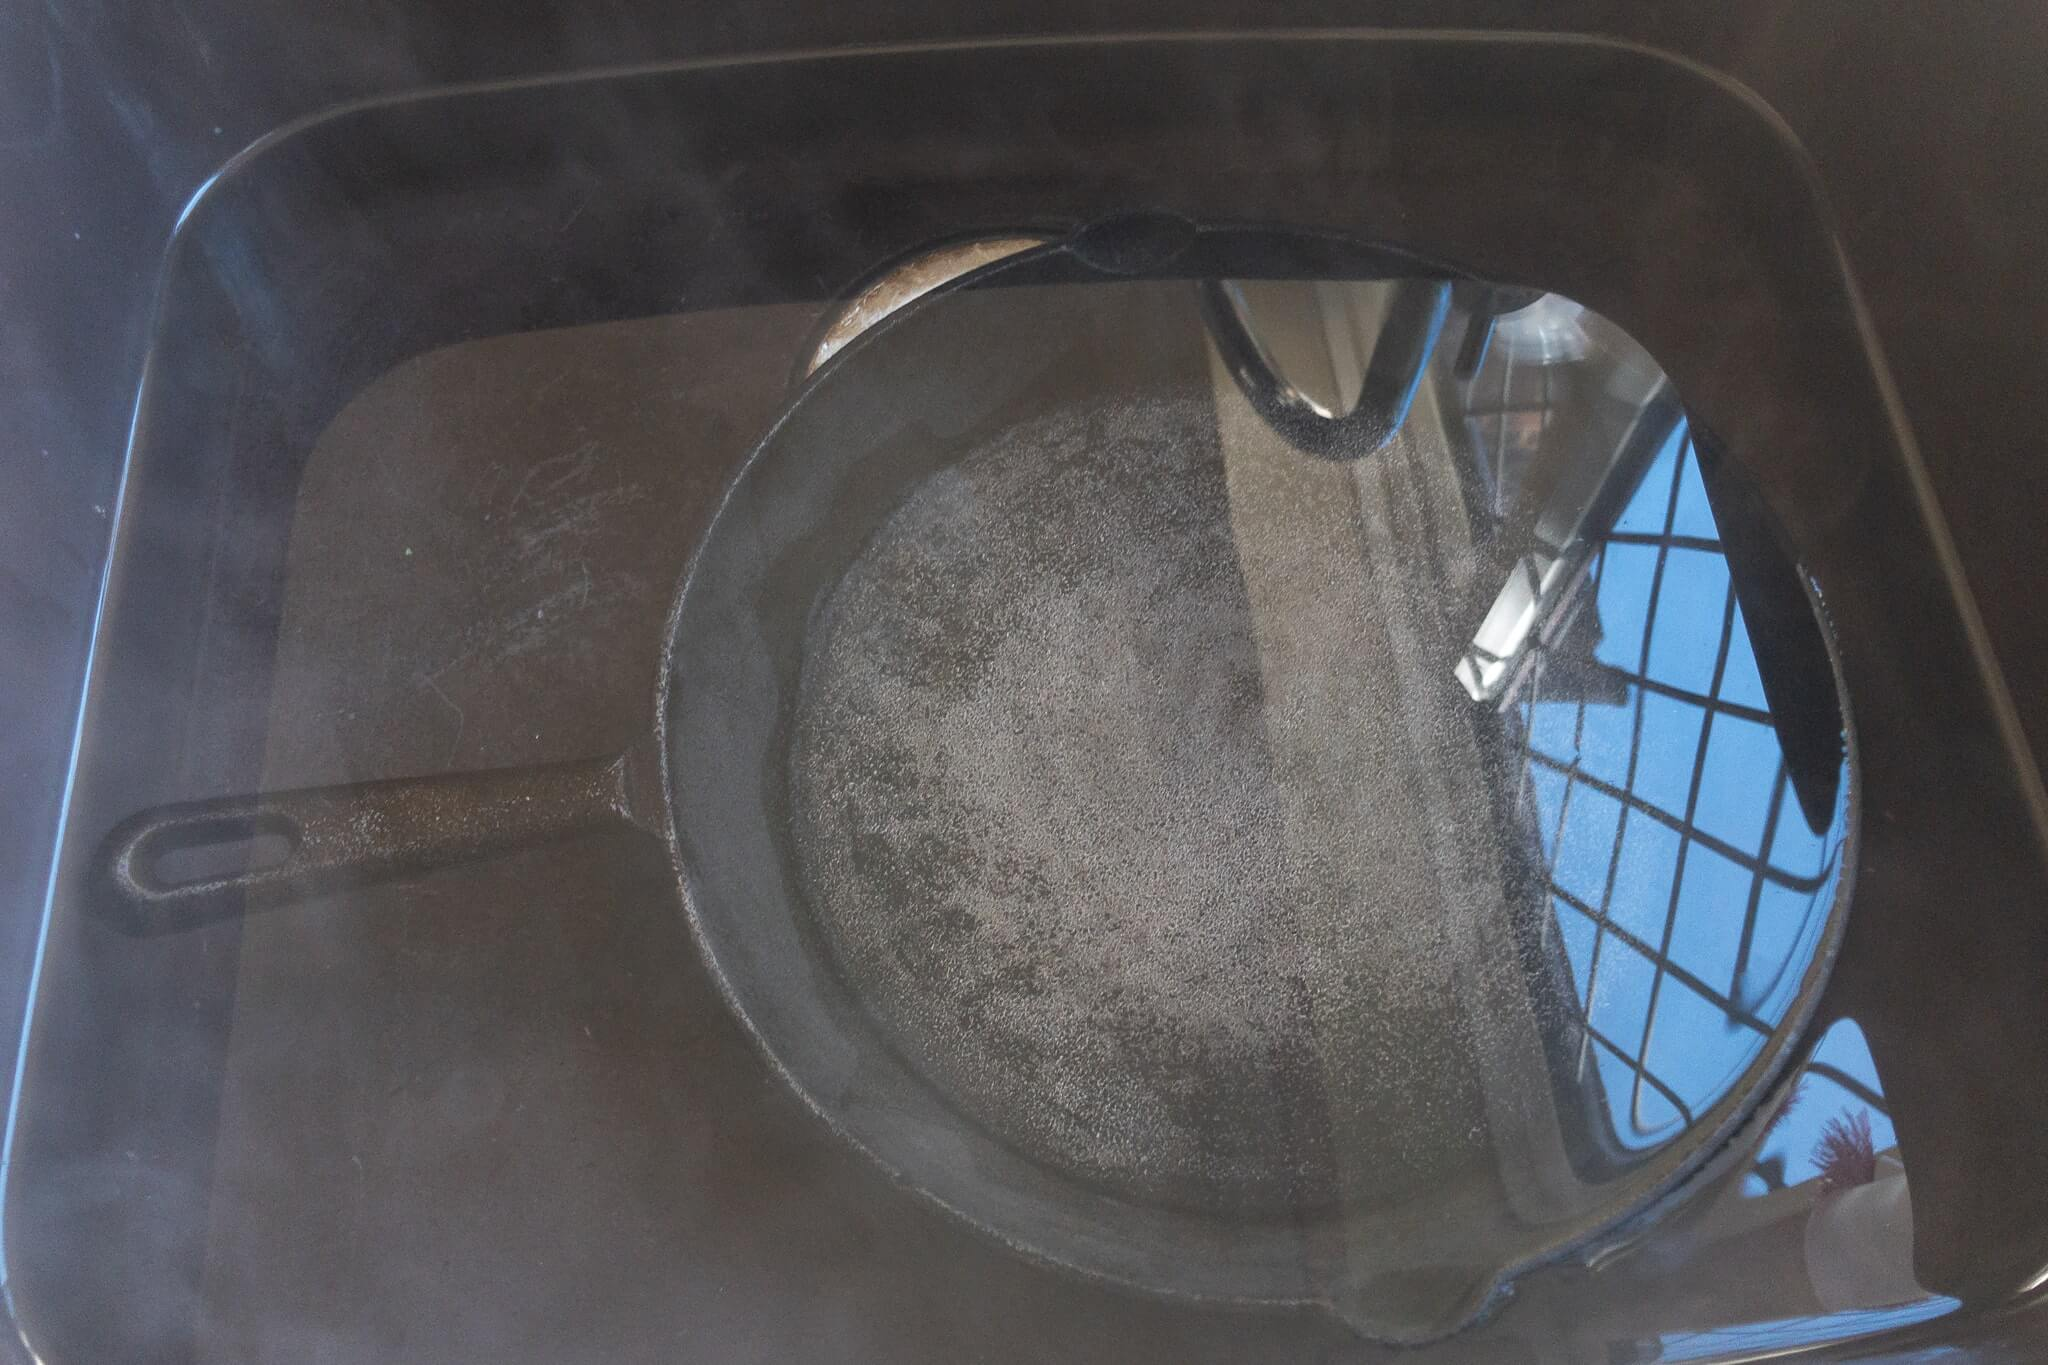 Cast iron soaking in boiling water and vinegar